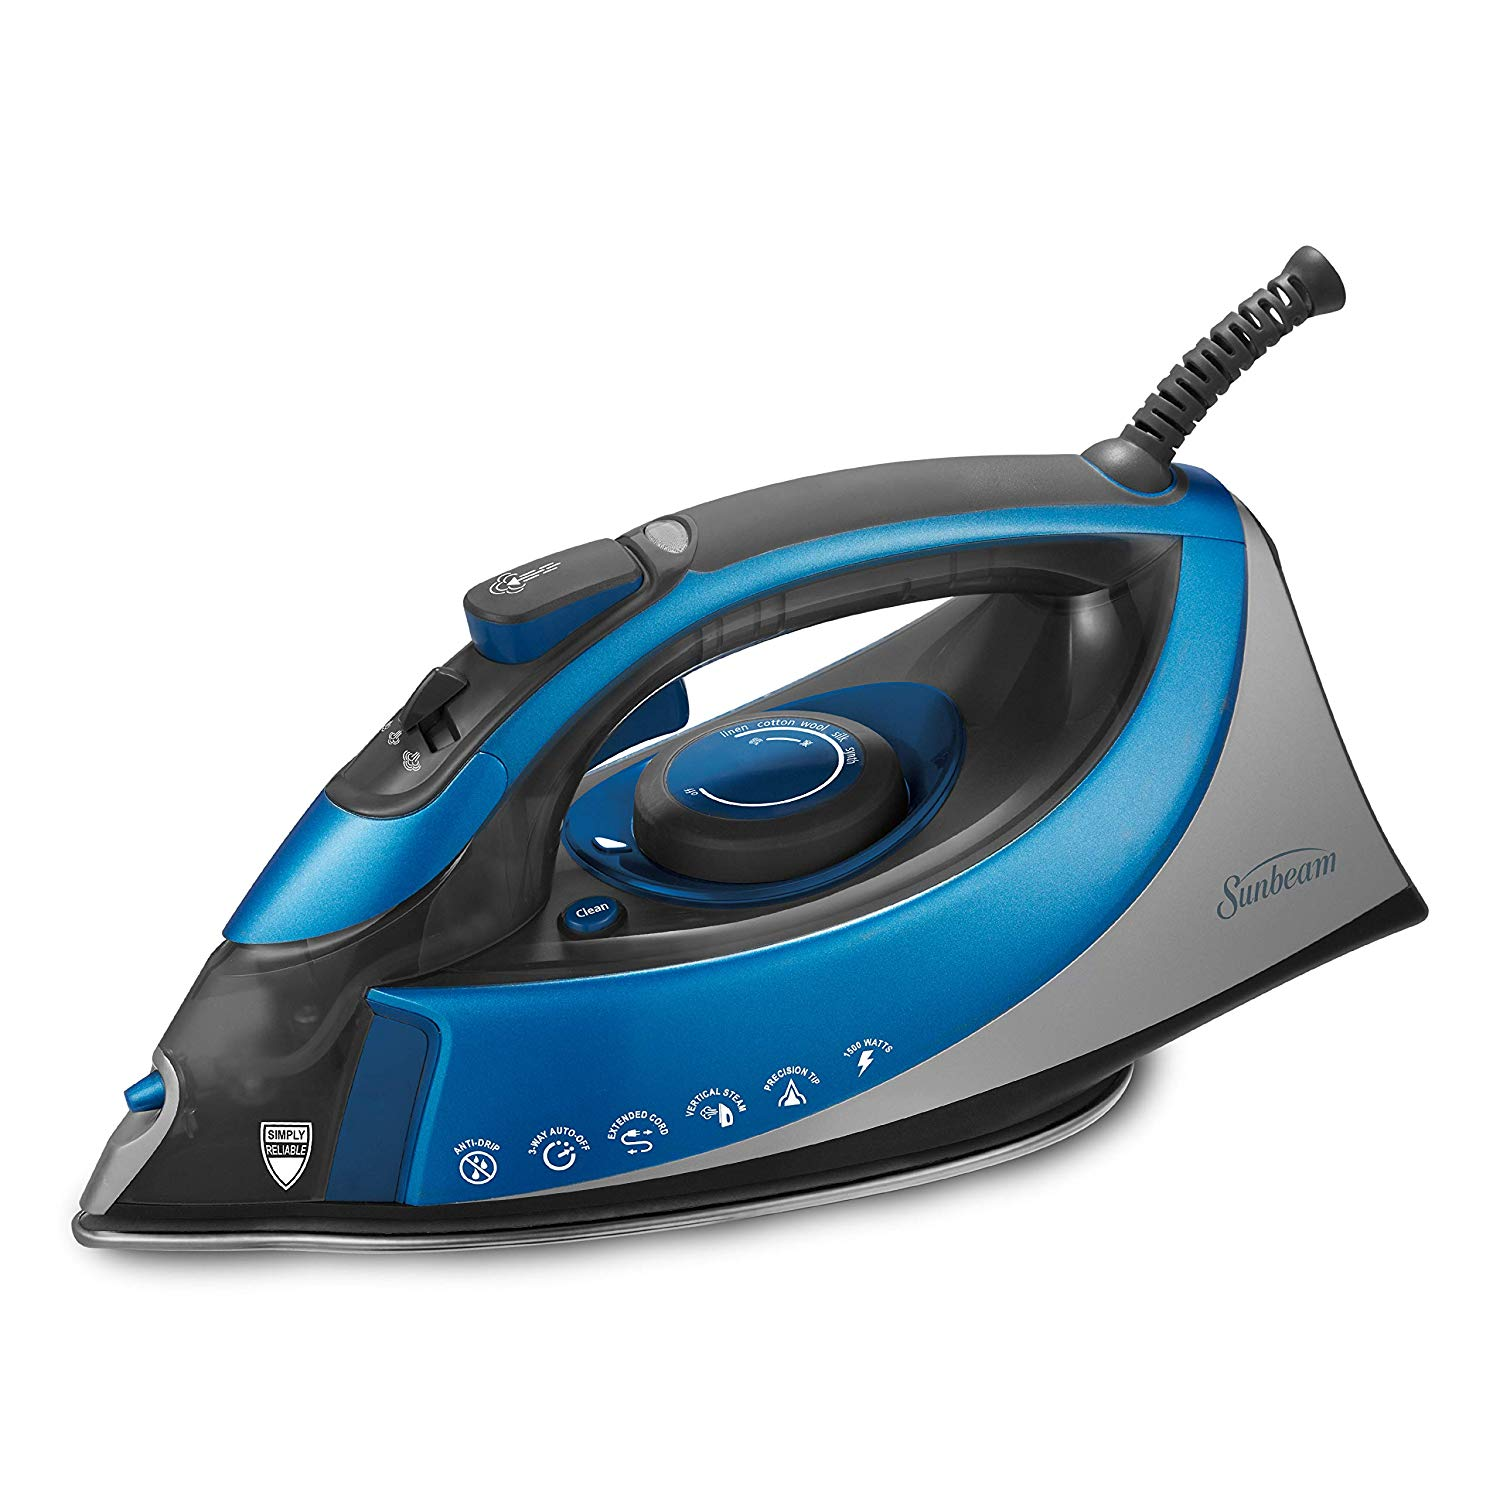 Sunbeam Turbo Steam Iron 2020 Review